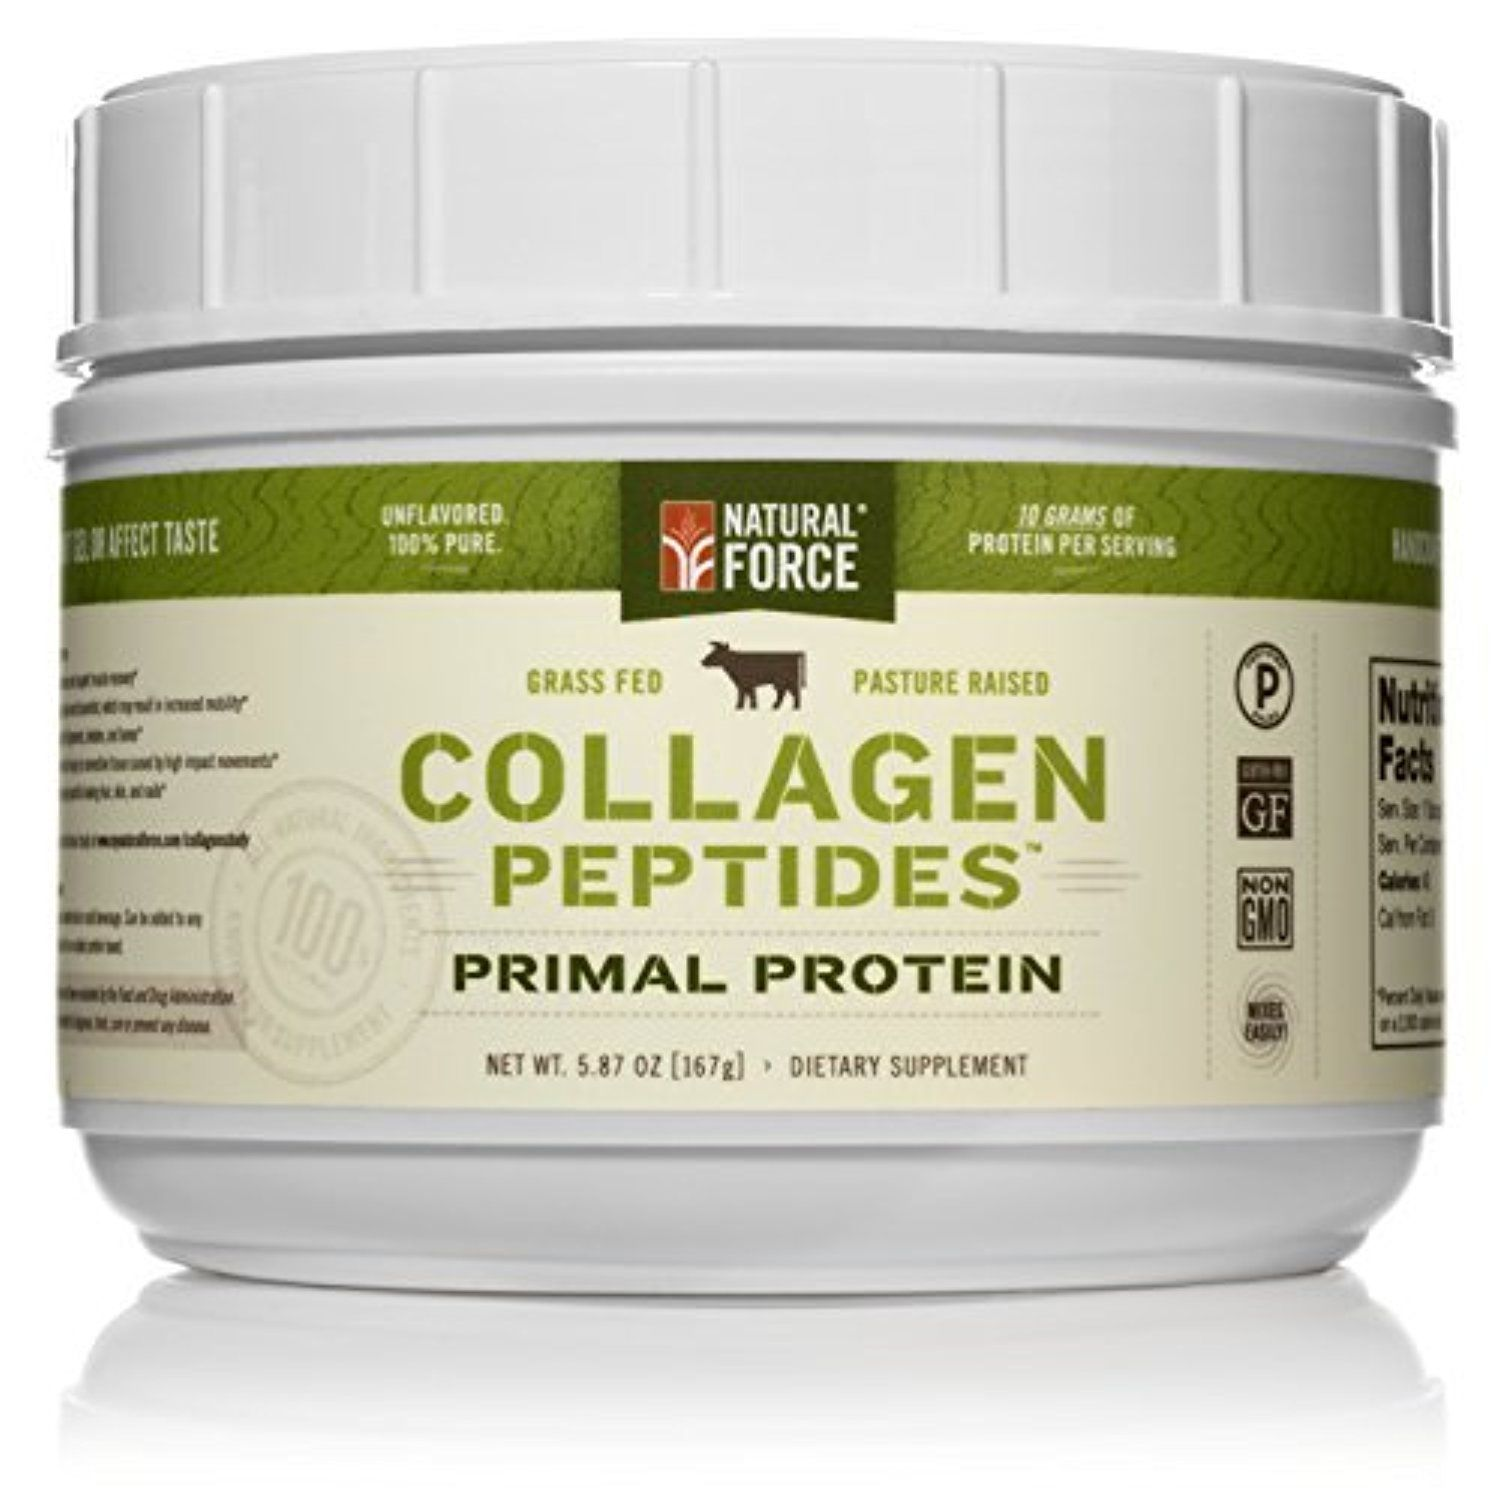 Natural Force Collagen Peptides 1 Rated Paleo Protein Powder 100 Free Range Hydrolyzed Collagen Protein For Spo Collagen Peptides Collagen Protein Collagen